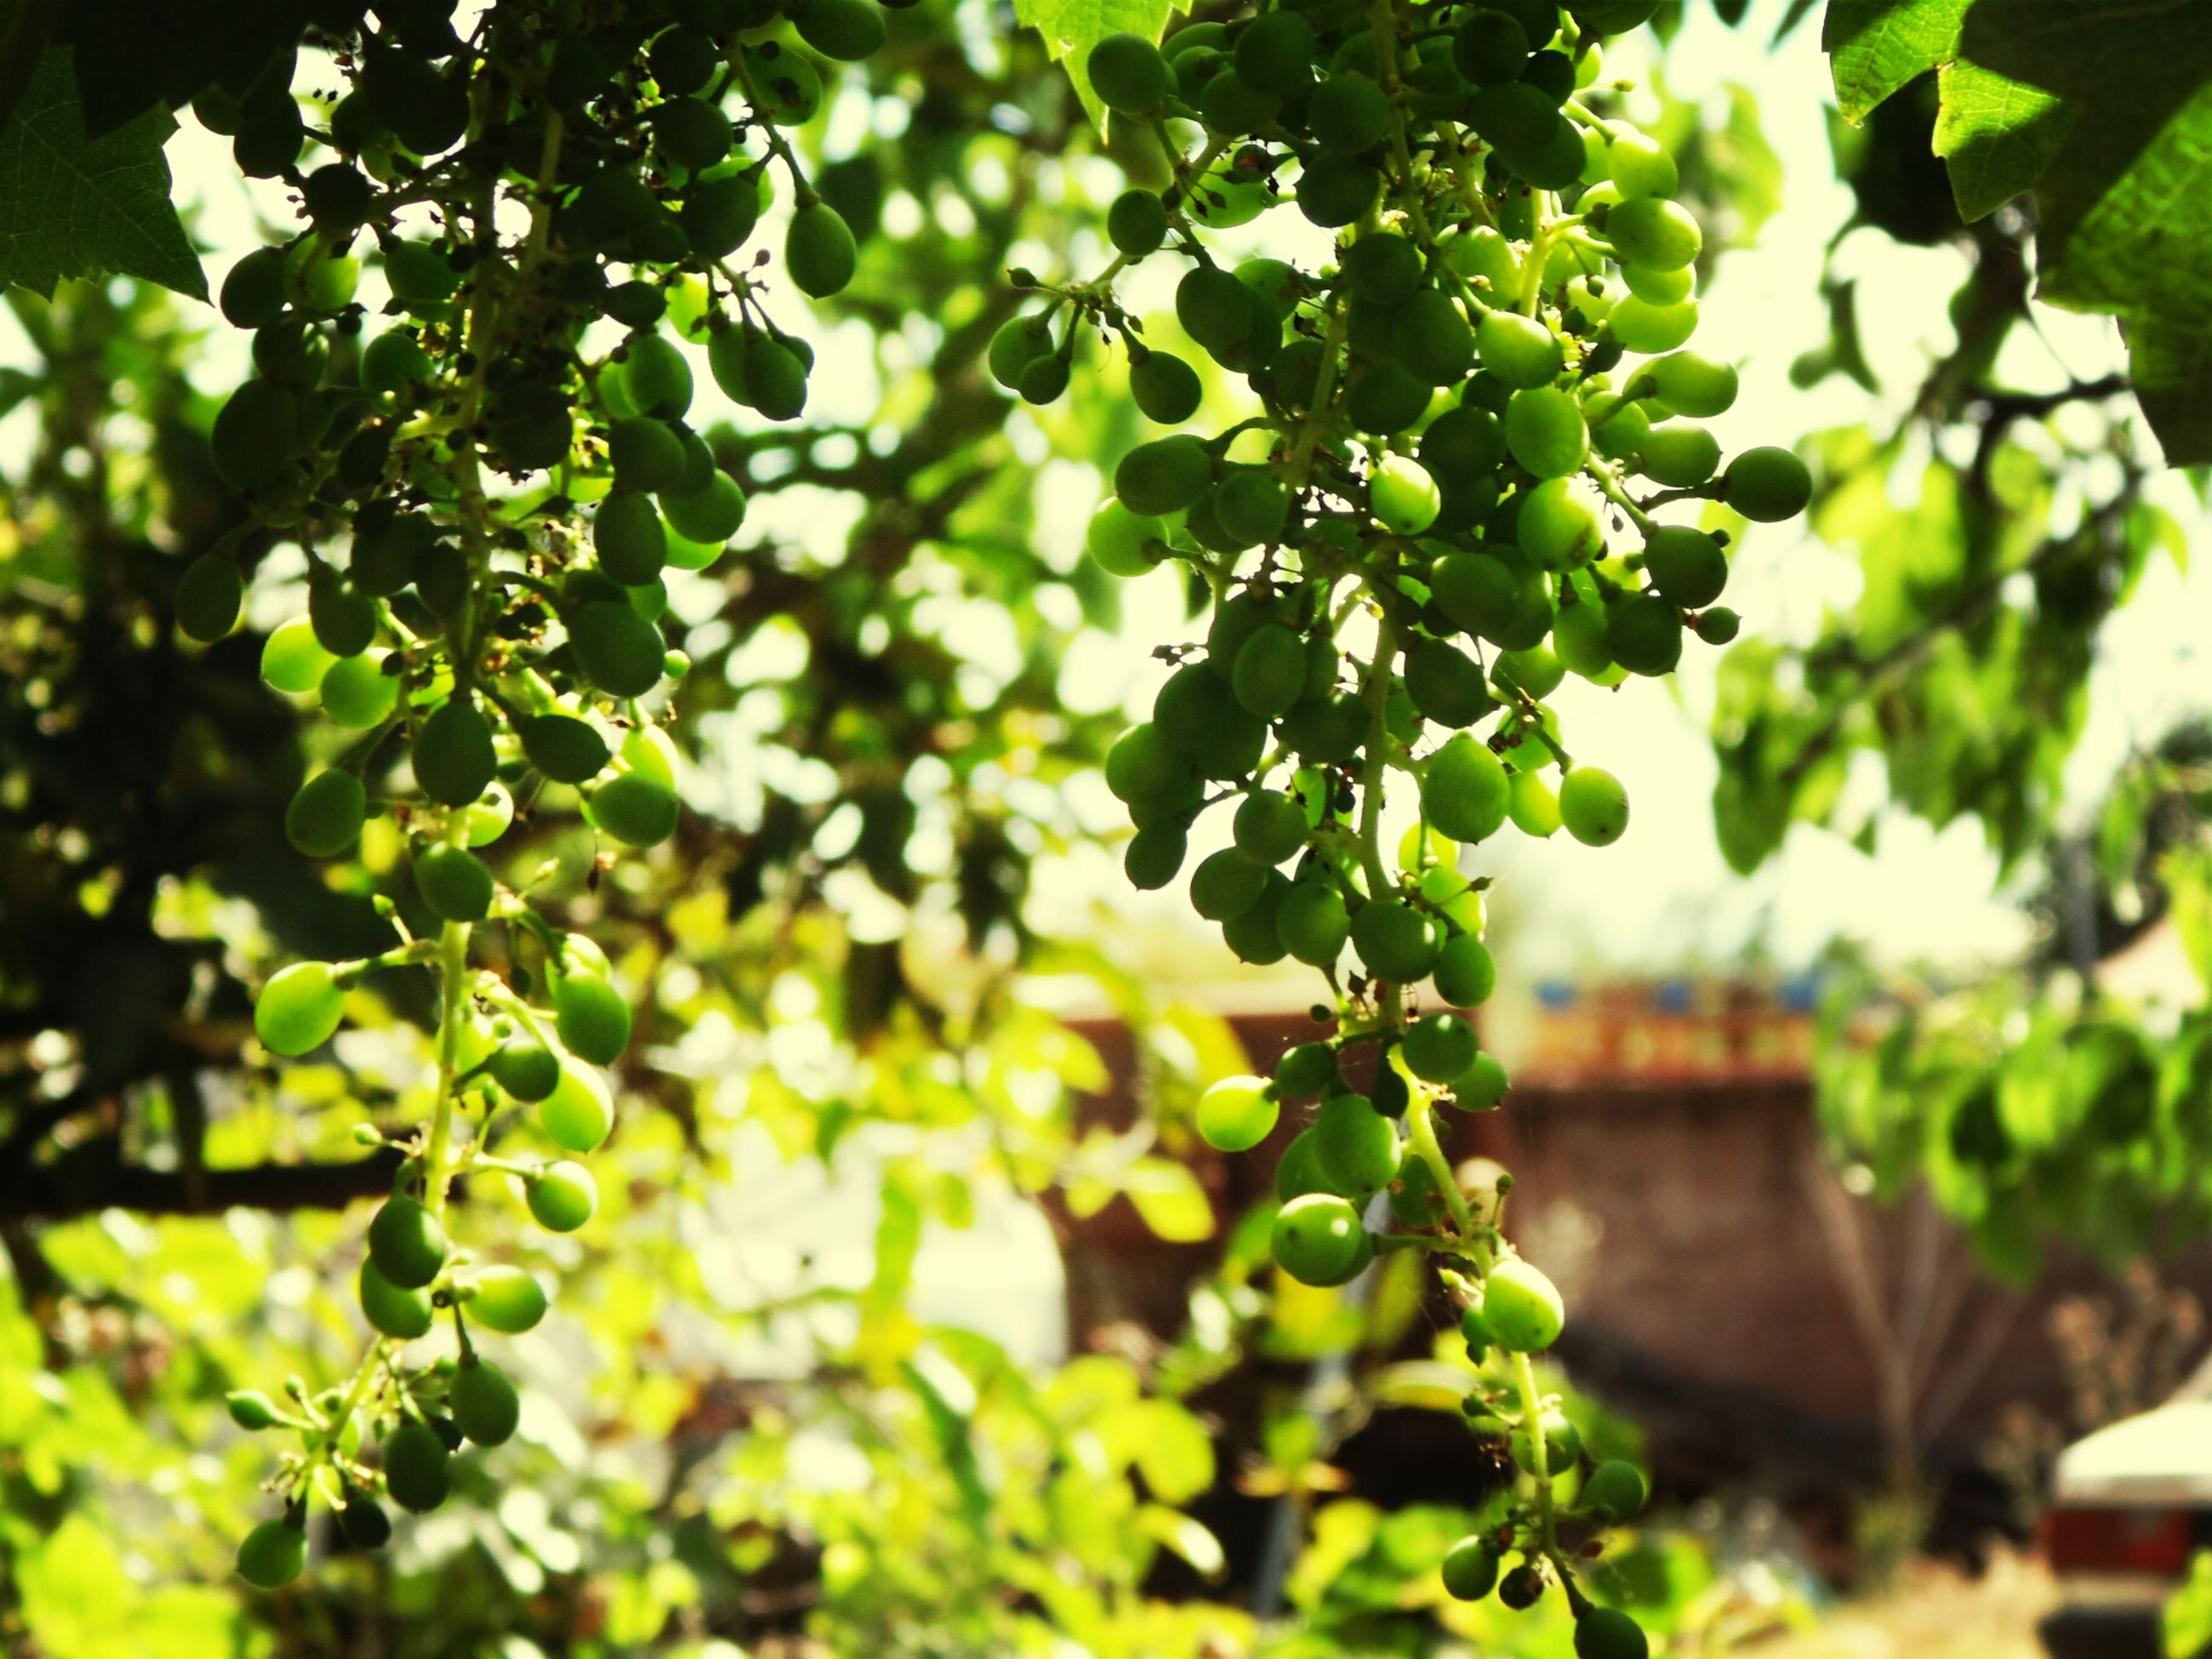 tree, leaf, growth, green color, branch, low angle view, focus on foreground, nature, plant, close-up, day, fruit, outdoors, green, selective focus, growing, hanging, no people, sunlight, lush foliage